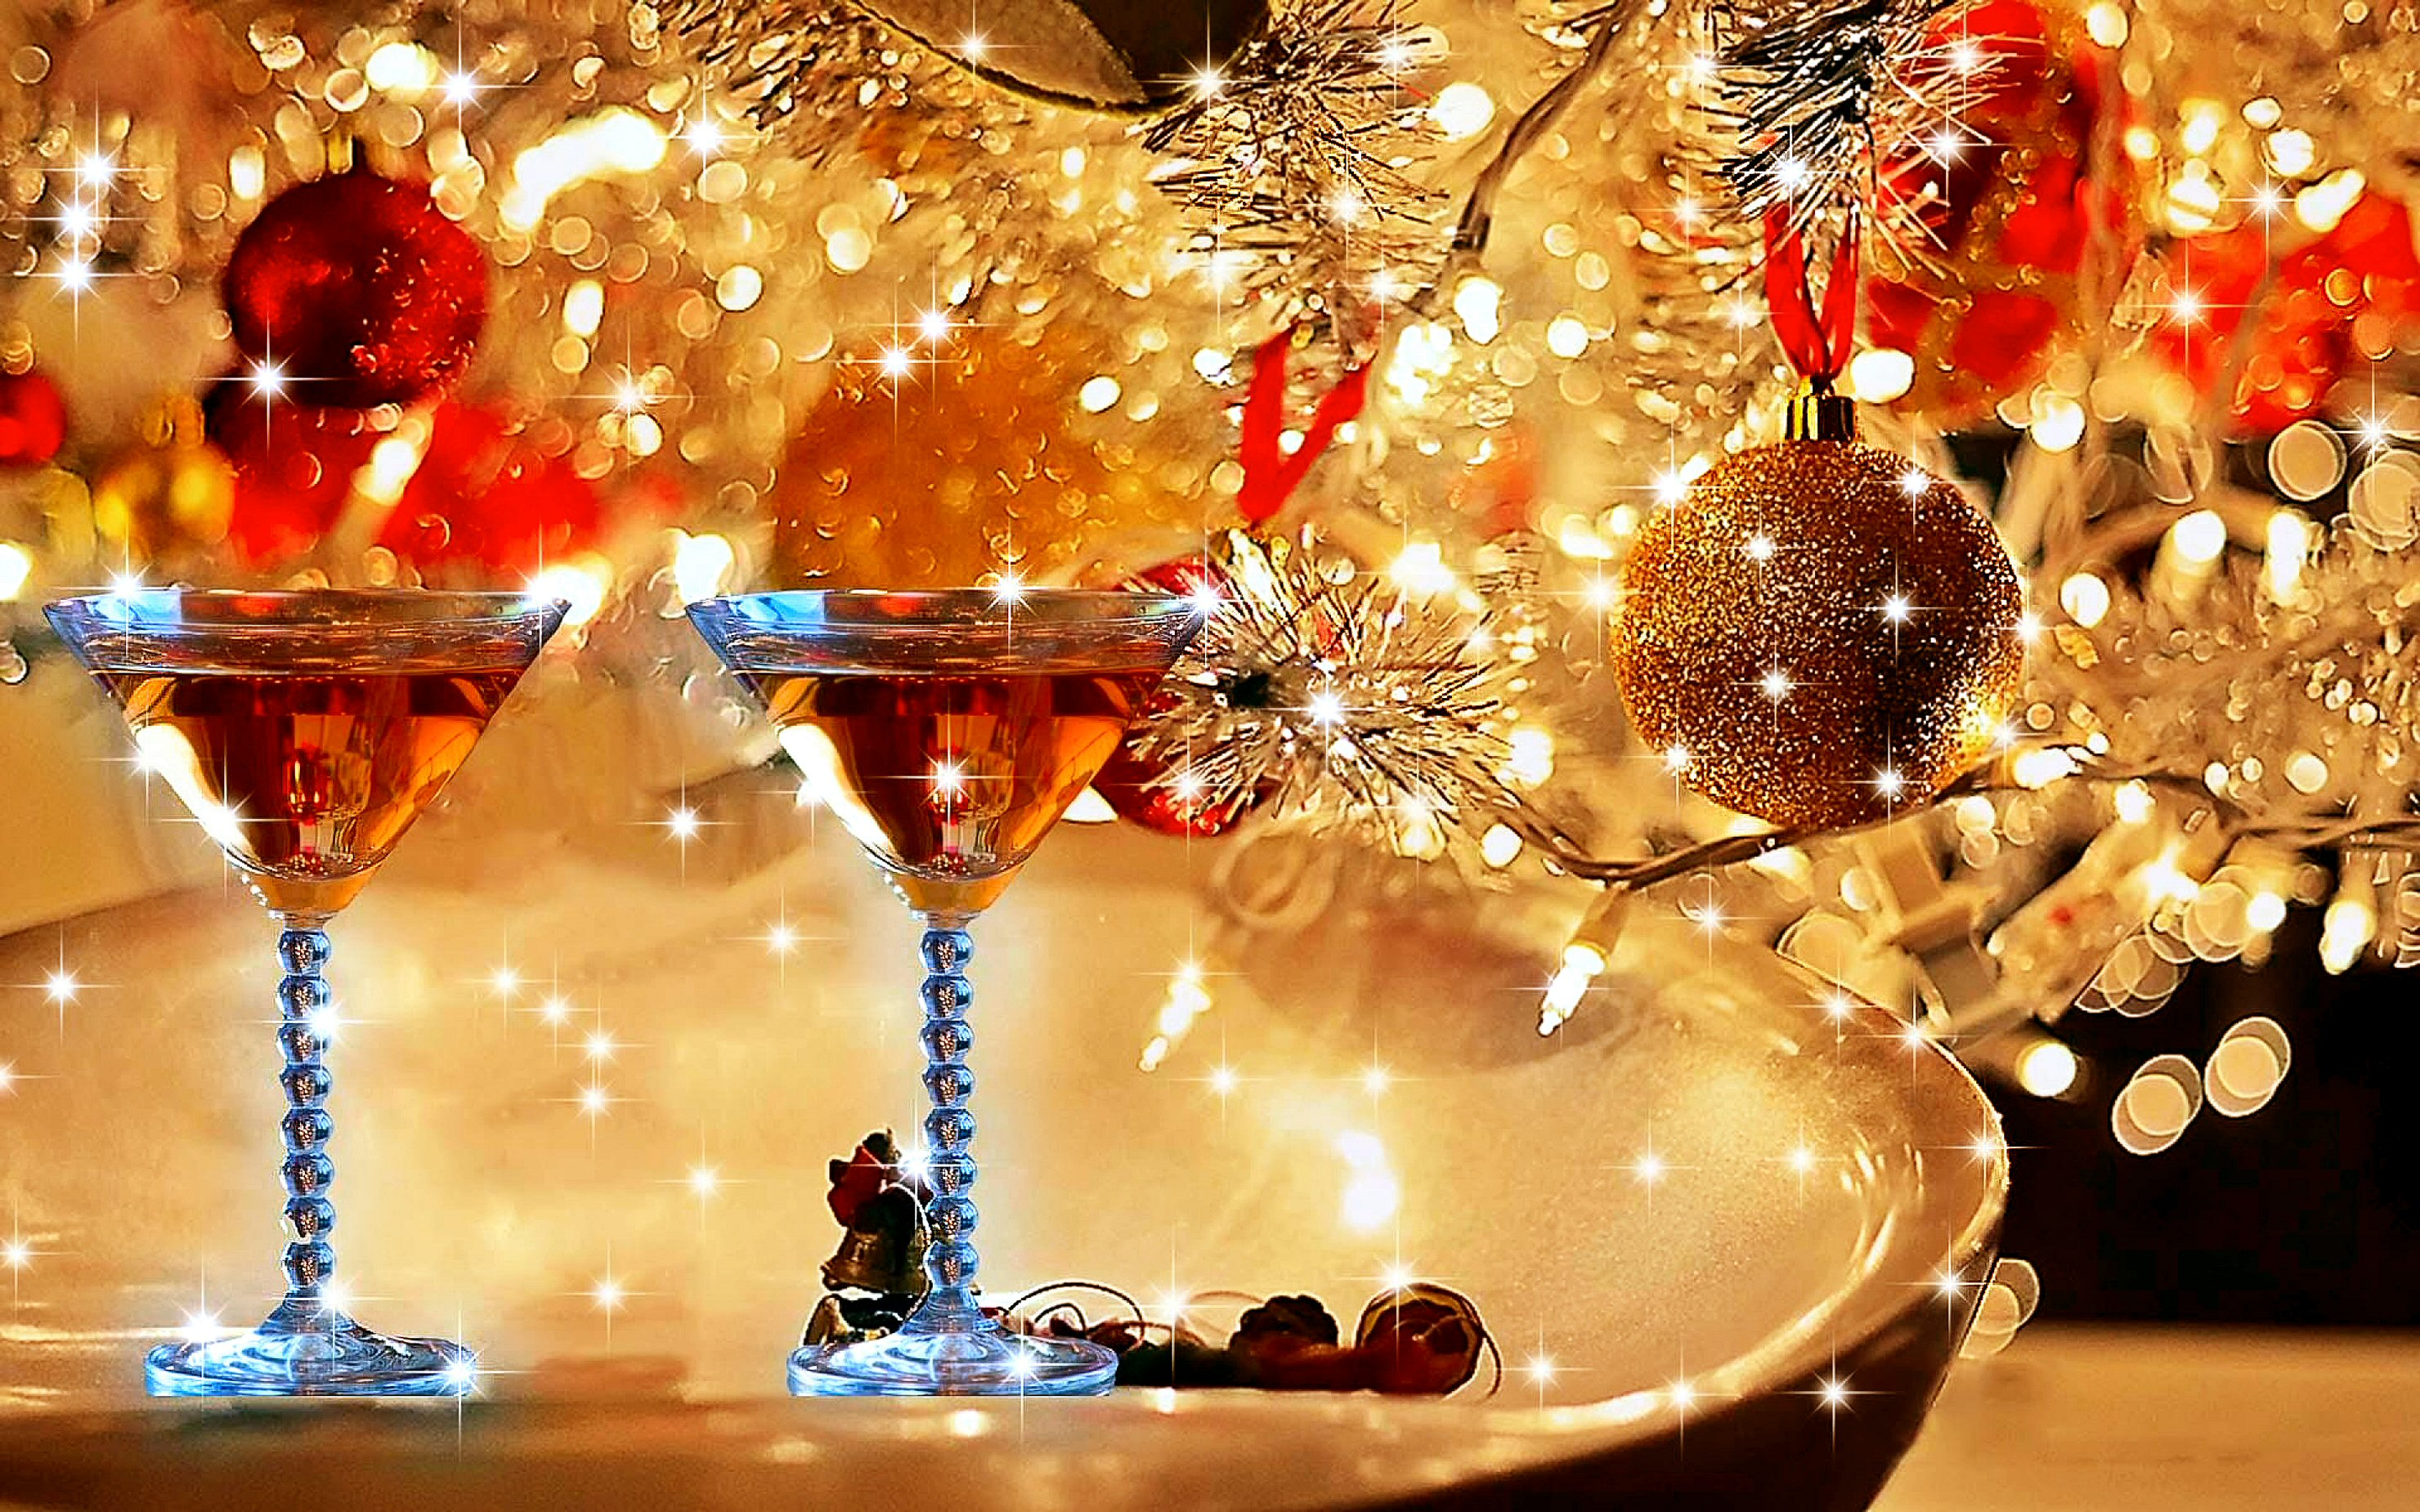 Christmas glass of wine hd wallpaper for laptop mobile